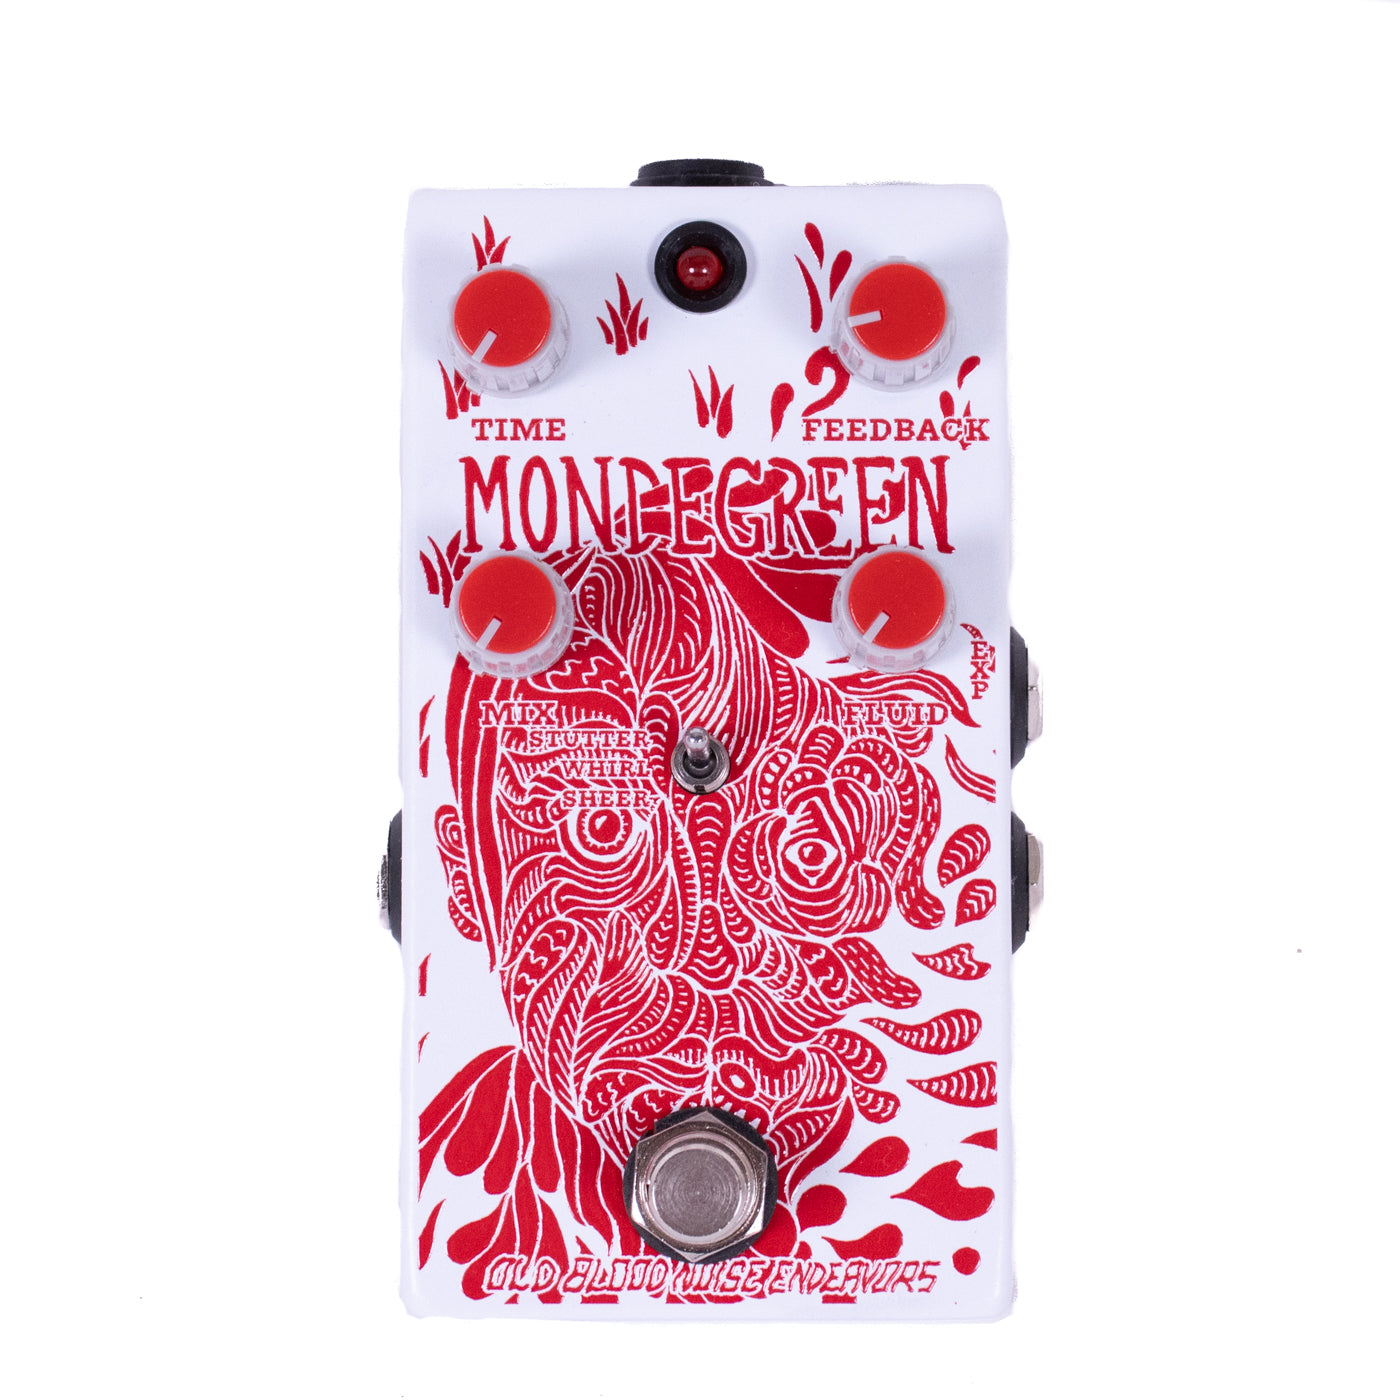 New Old Blood Noise Endeavors Mondegreen Delay image 3